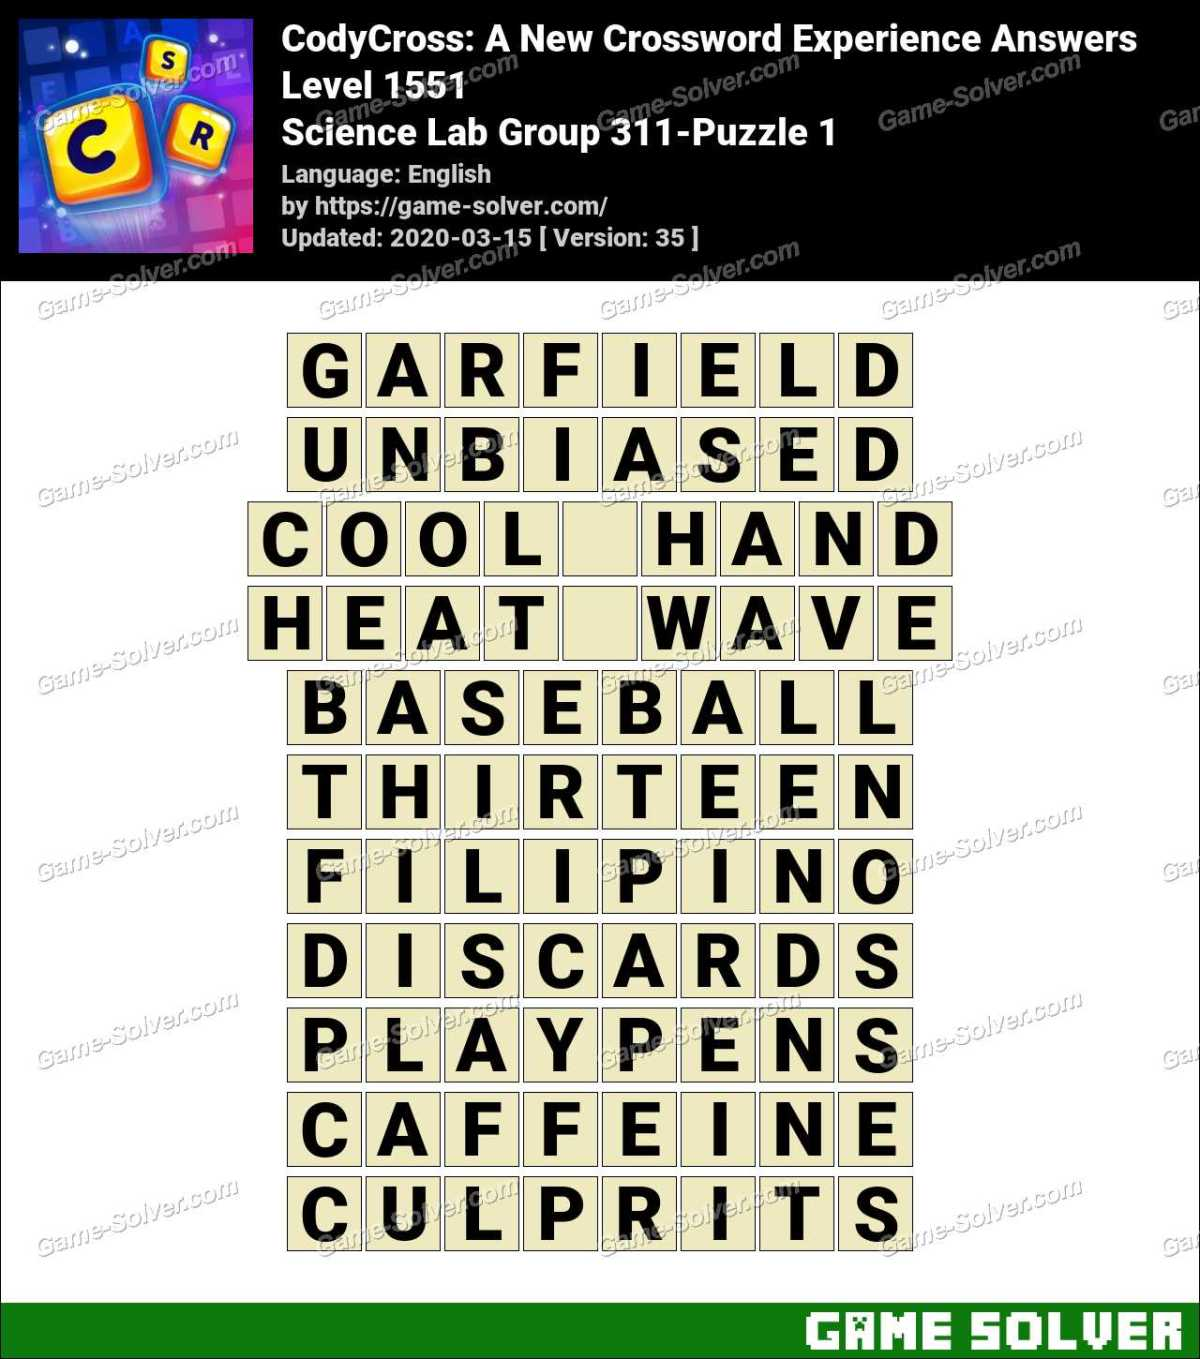 CodyCross Science Lab Group 311-Puzzle 1 Answers